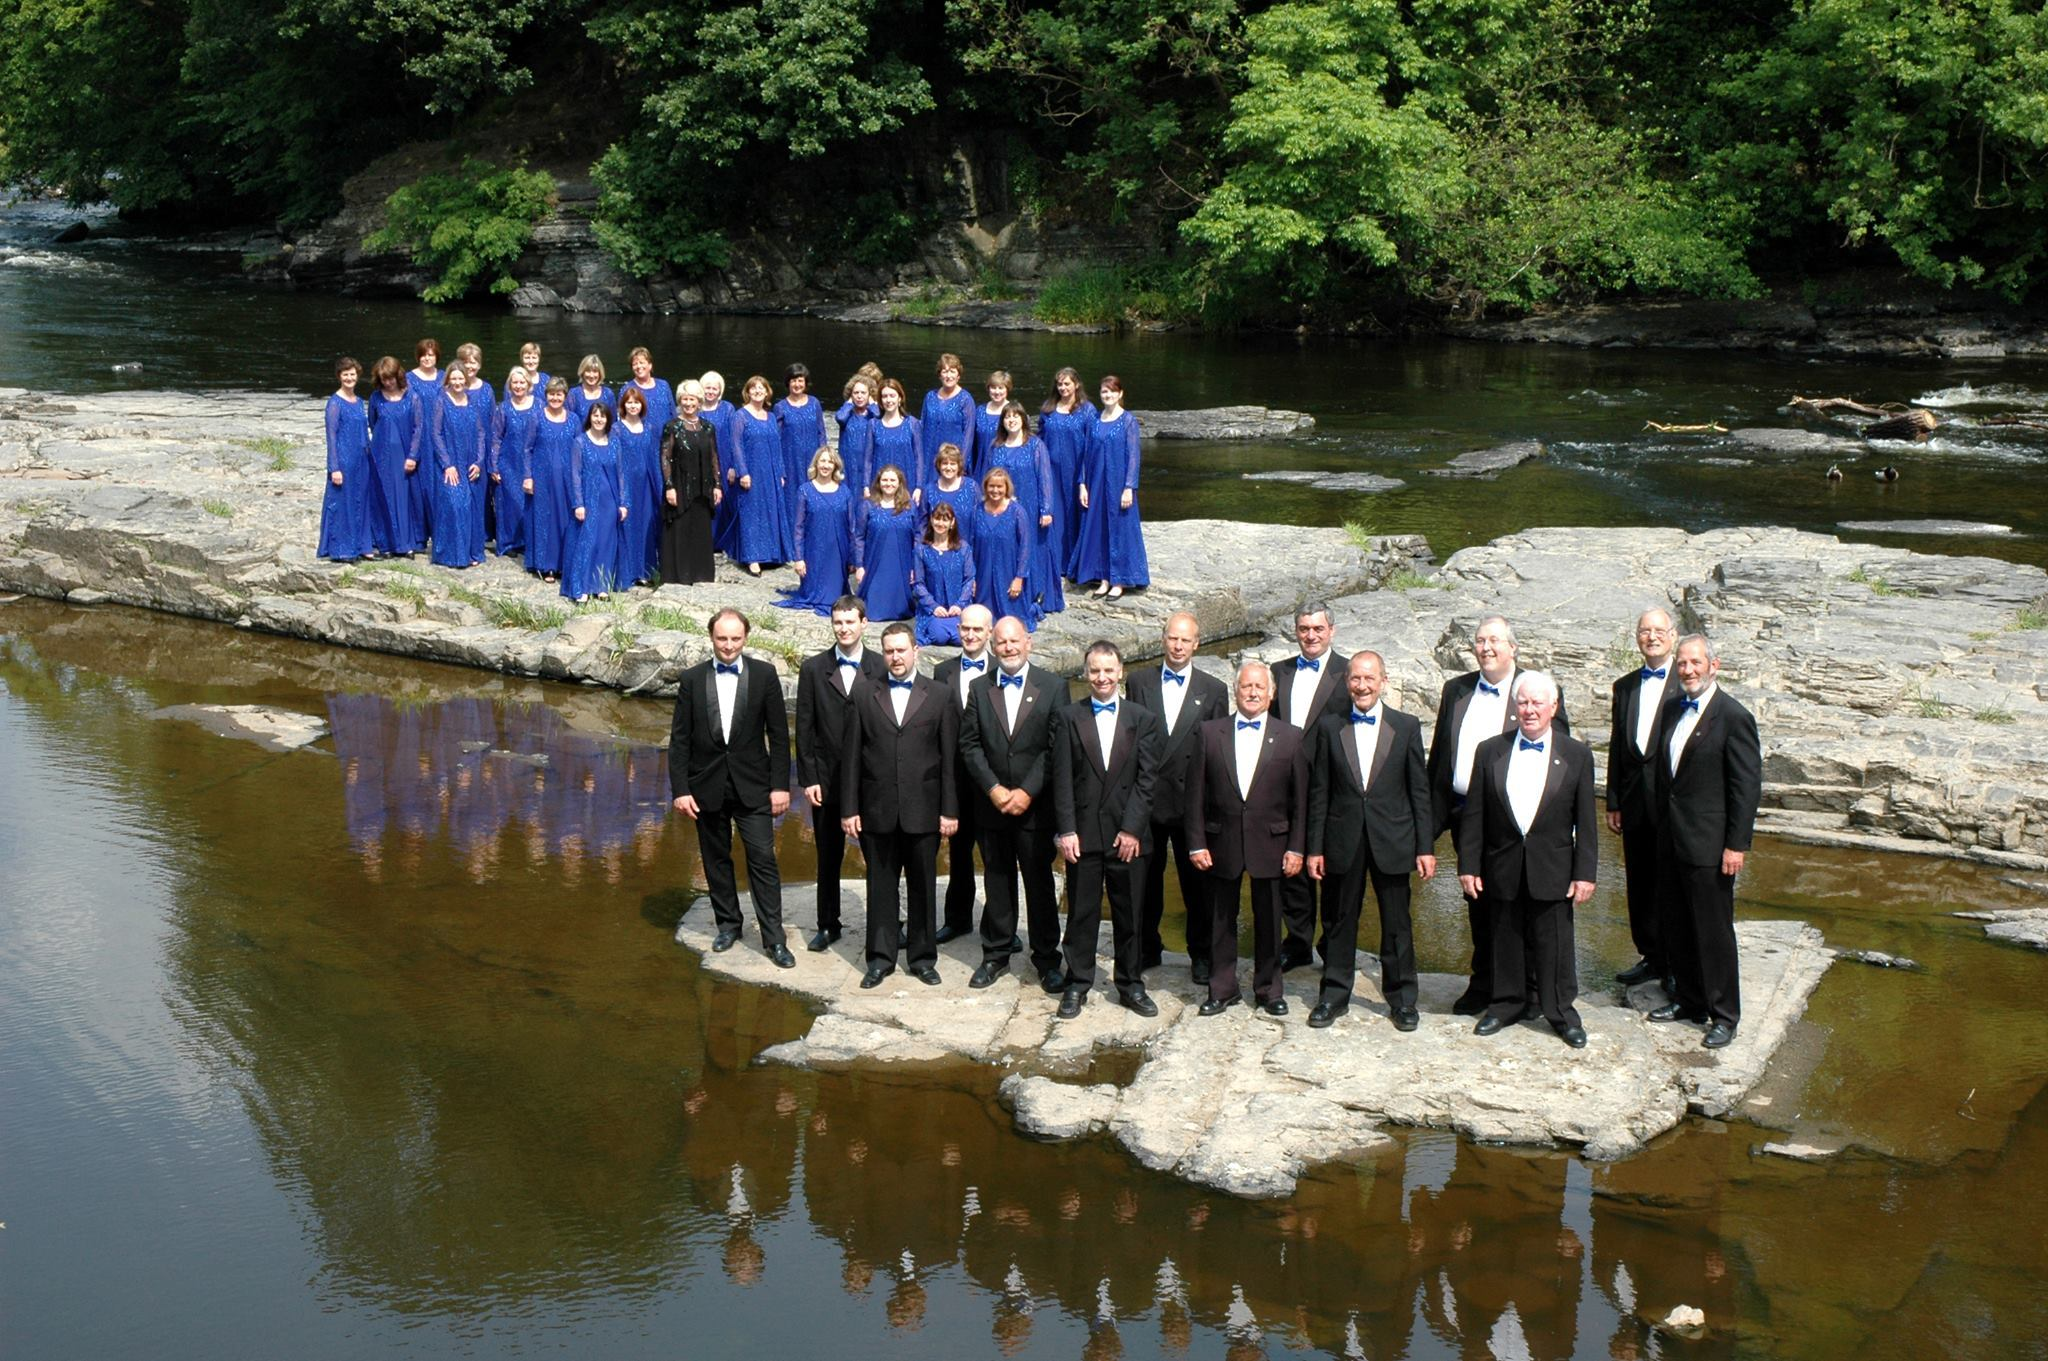 The 50 strong Sirenian Singers will appear at Rhyl Town Hall next month